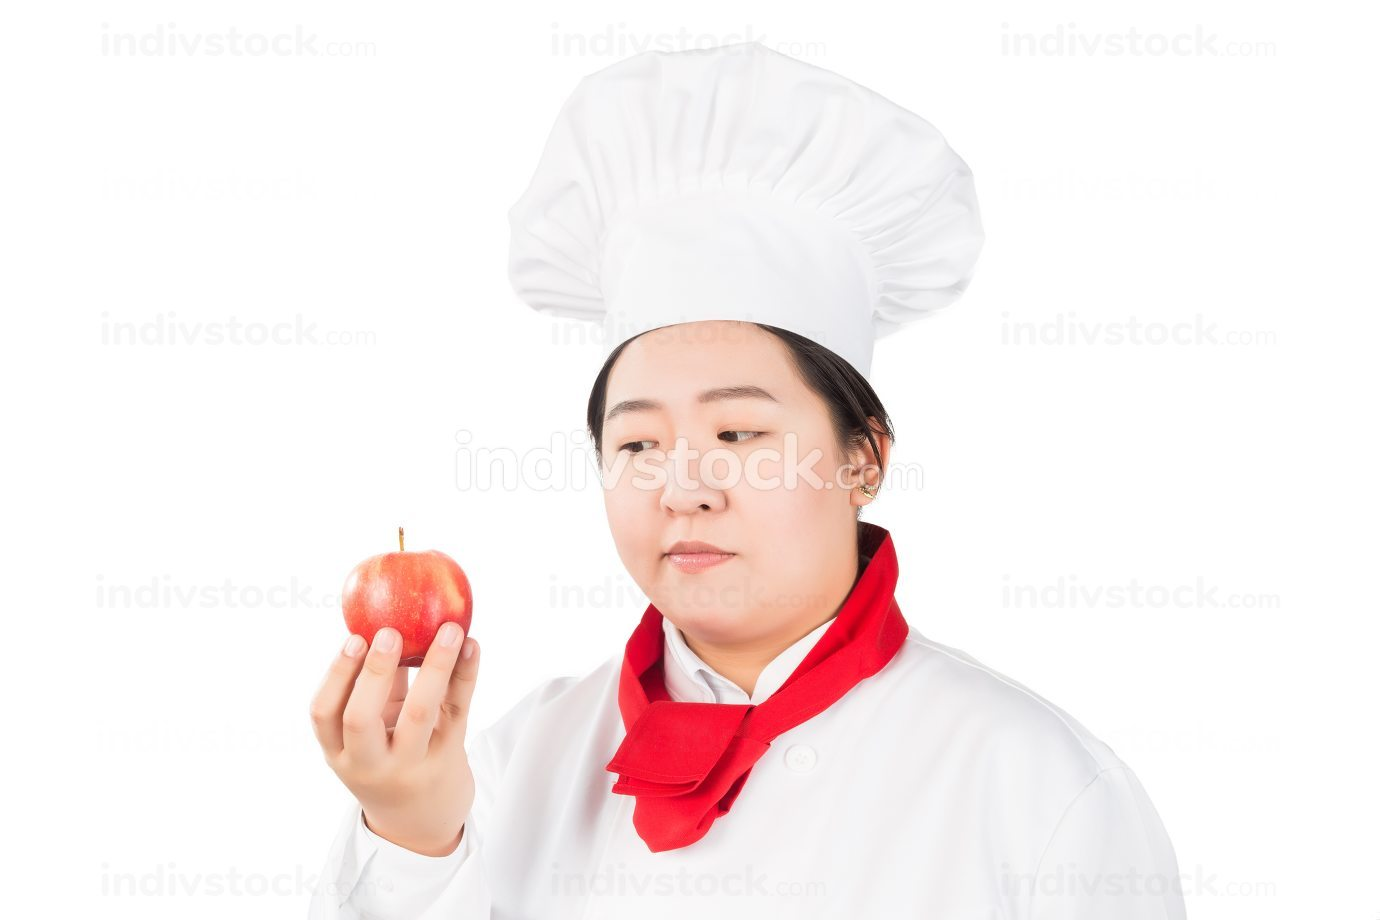 smiling female chef, holding a red apple